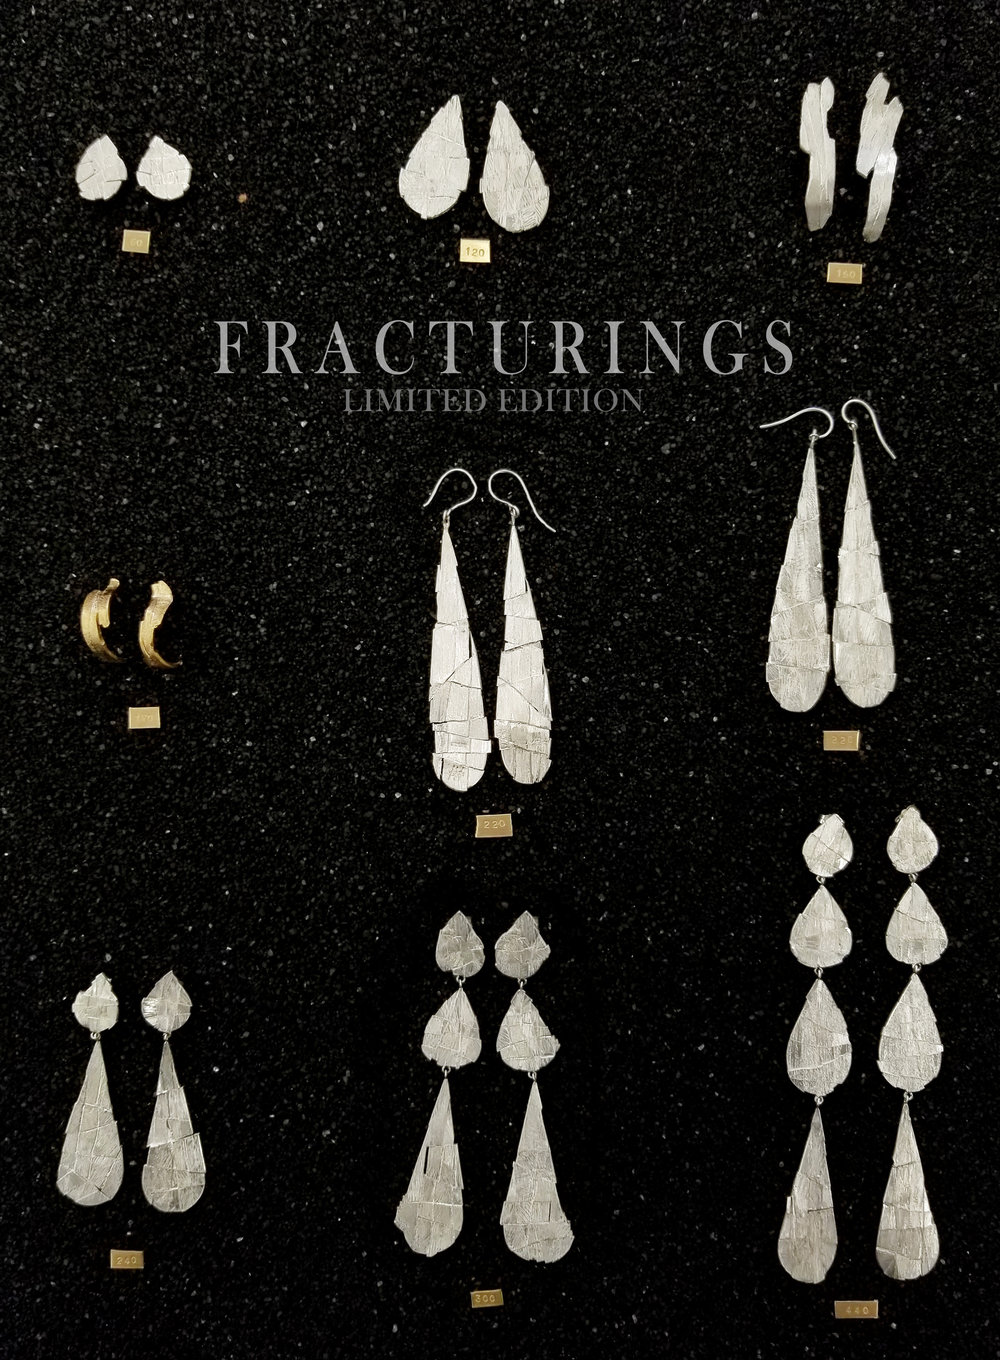 An exploration of texture and reflectivity,  FRACTURINGS  comprises an array of earrings that have been shattered apart and re-unified to reflect light like the facets of stones.